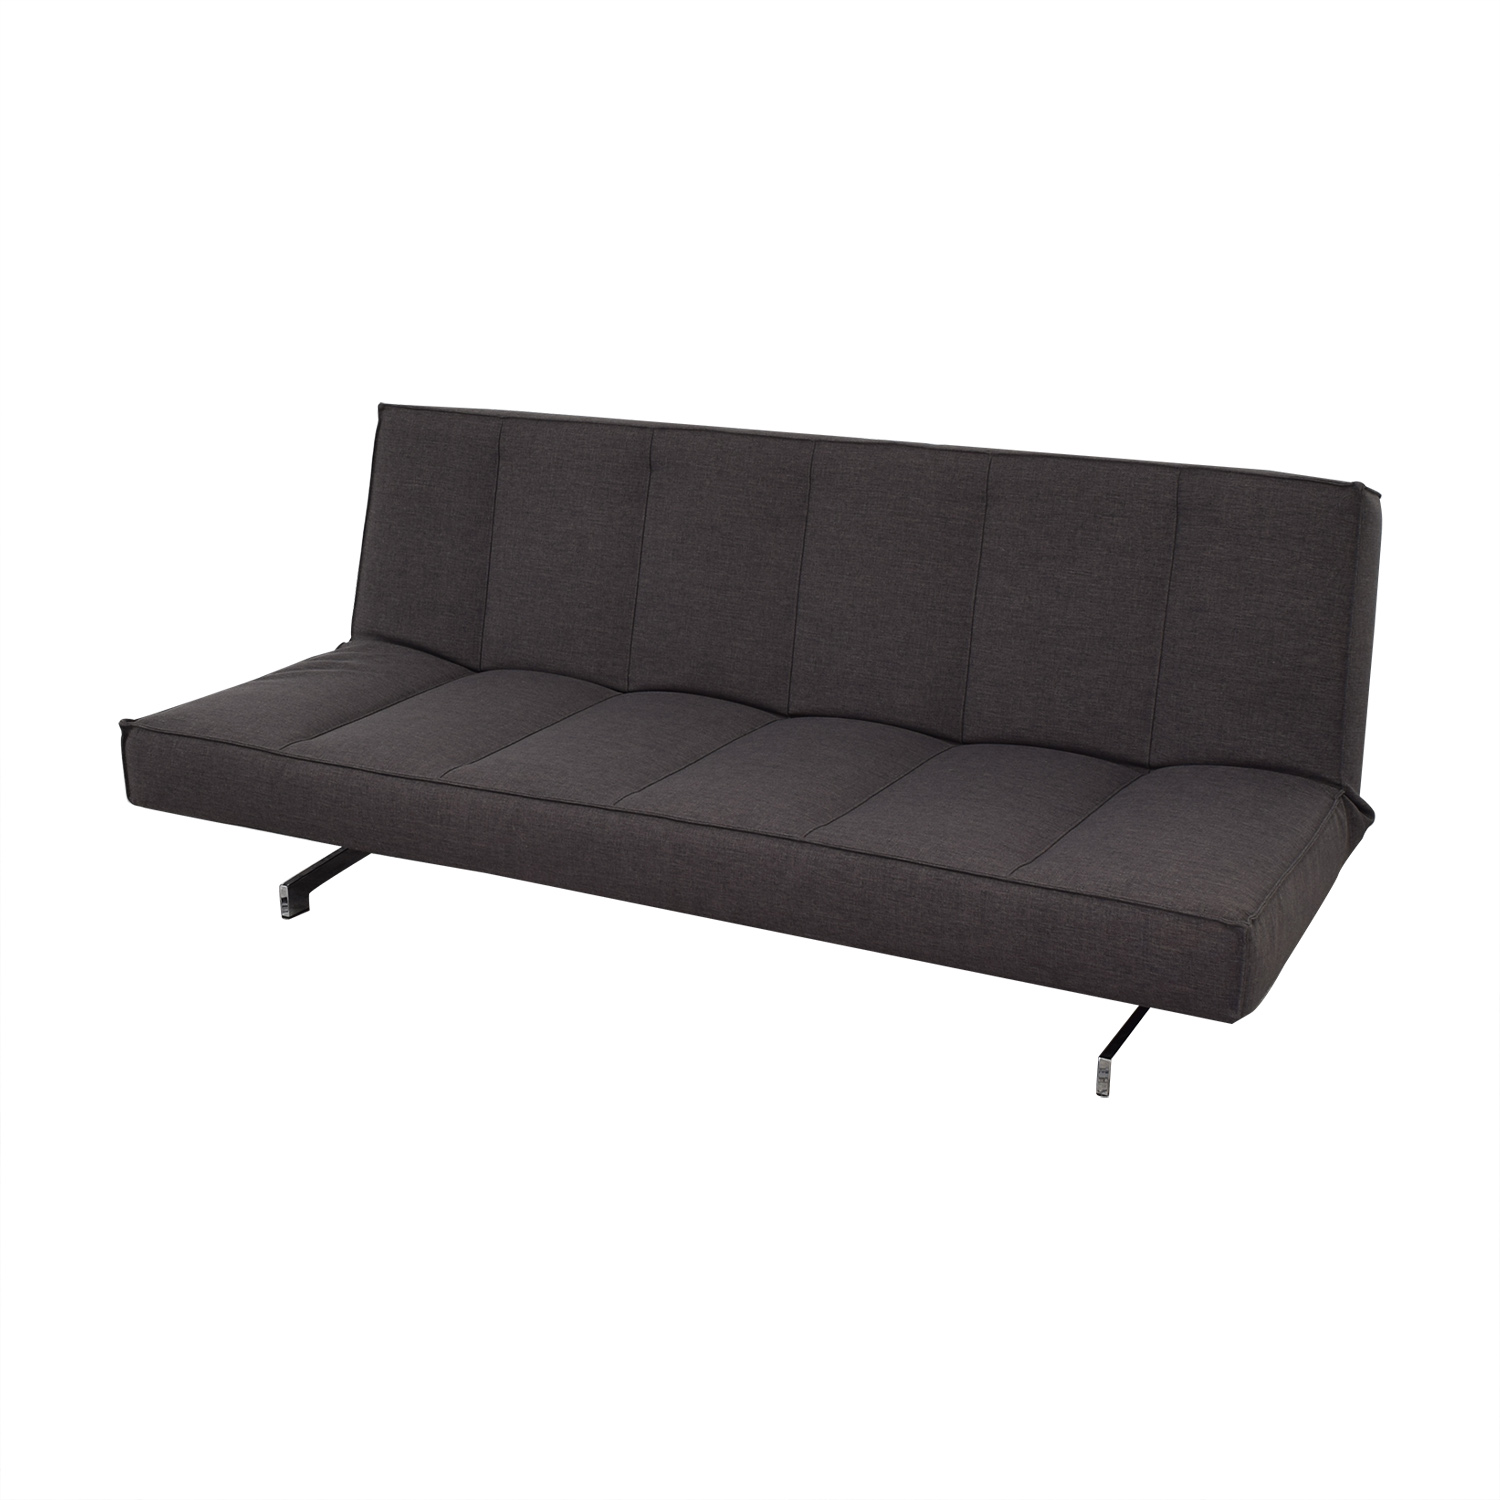 shop CB2 CB2 Flex Gravel Convertible Sofa online